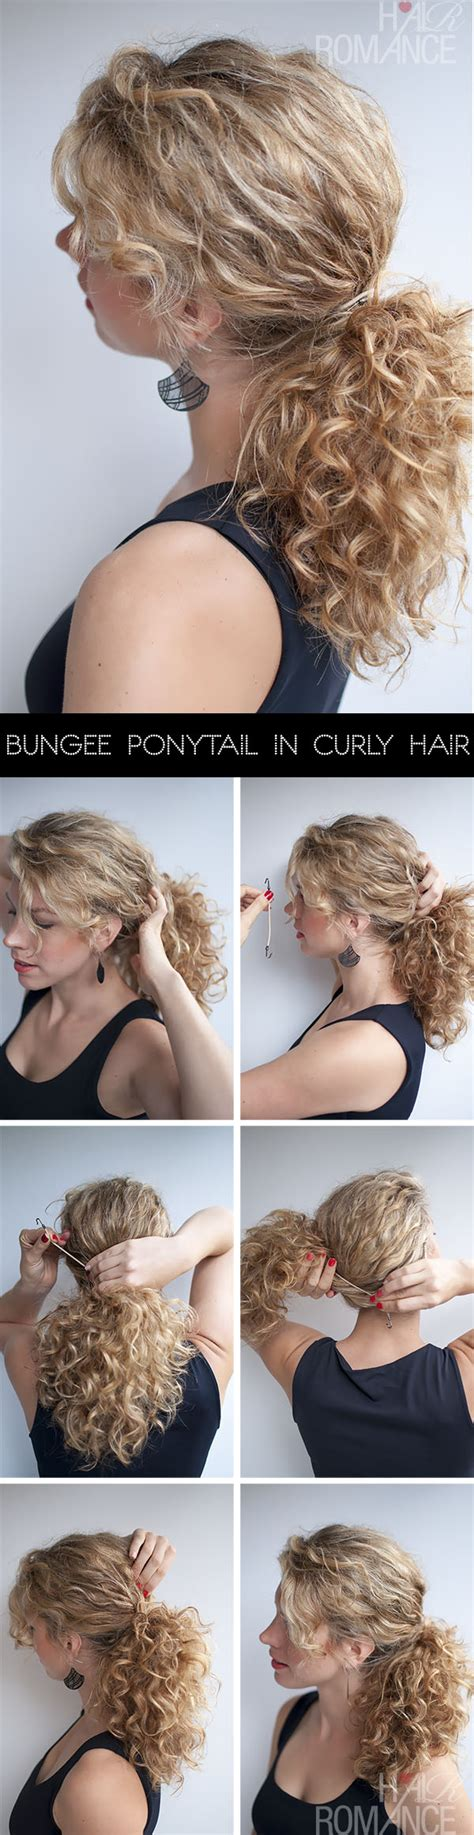 hairstyles for curly hair step by step curly hairstyle tutorial the curly ponytail hair romance